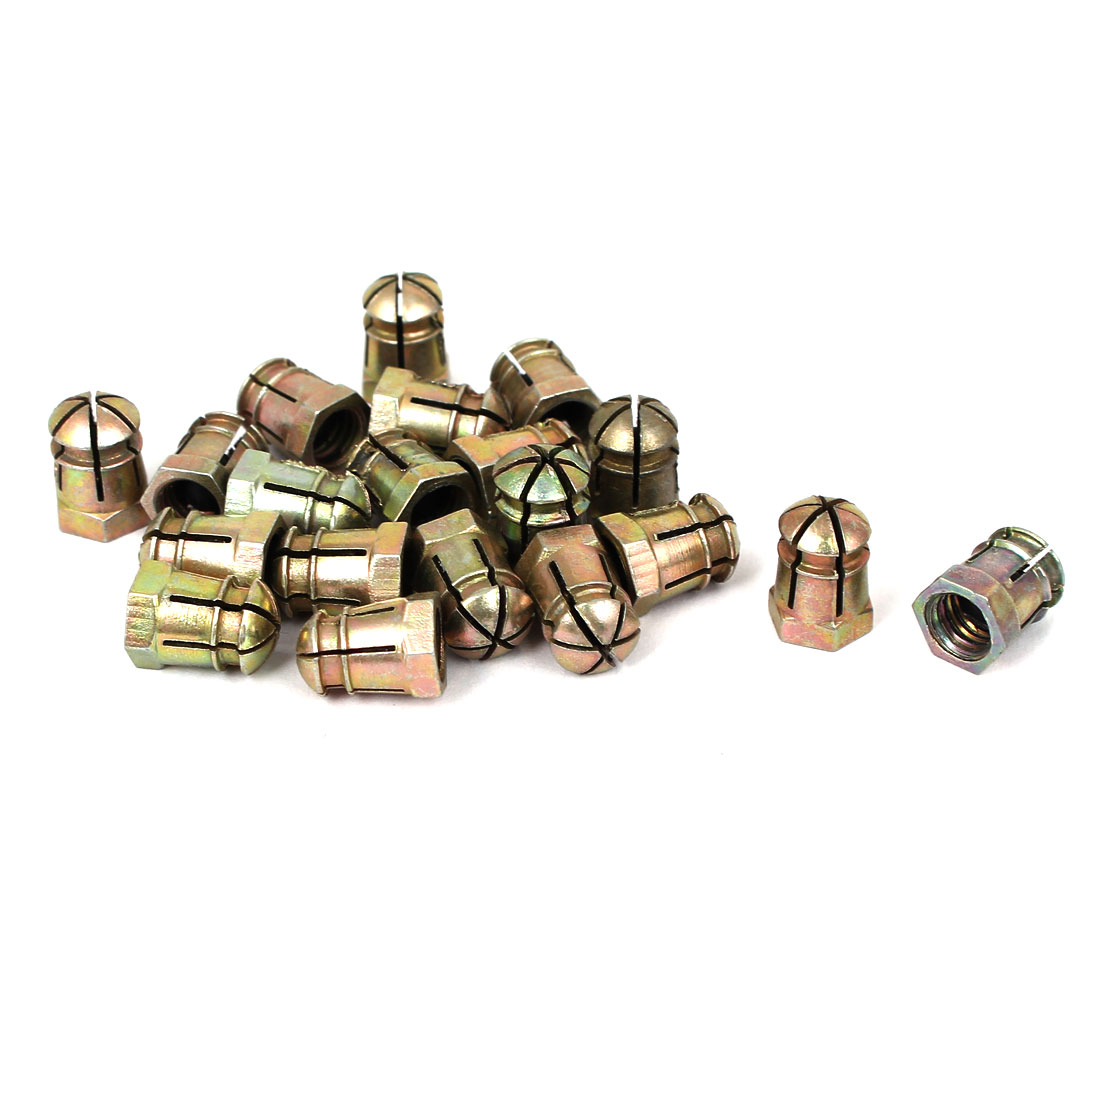 M6 Female Thread Screwed Connection Alloy Expanding Nuts Bronze Tone 20 Pcs